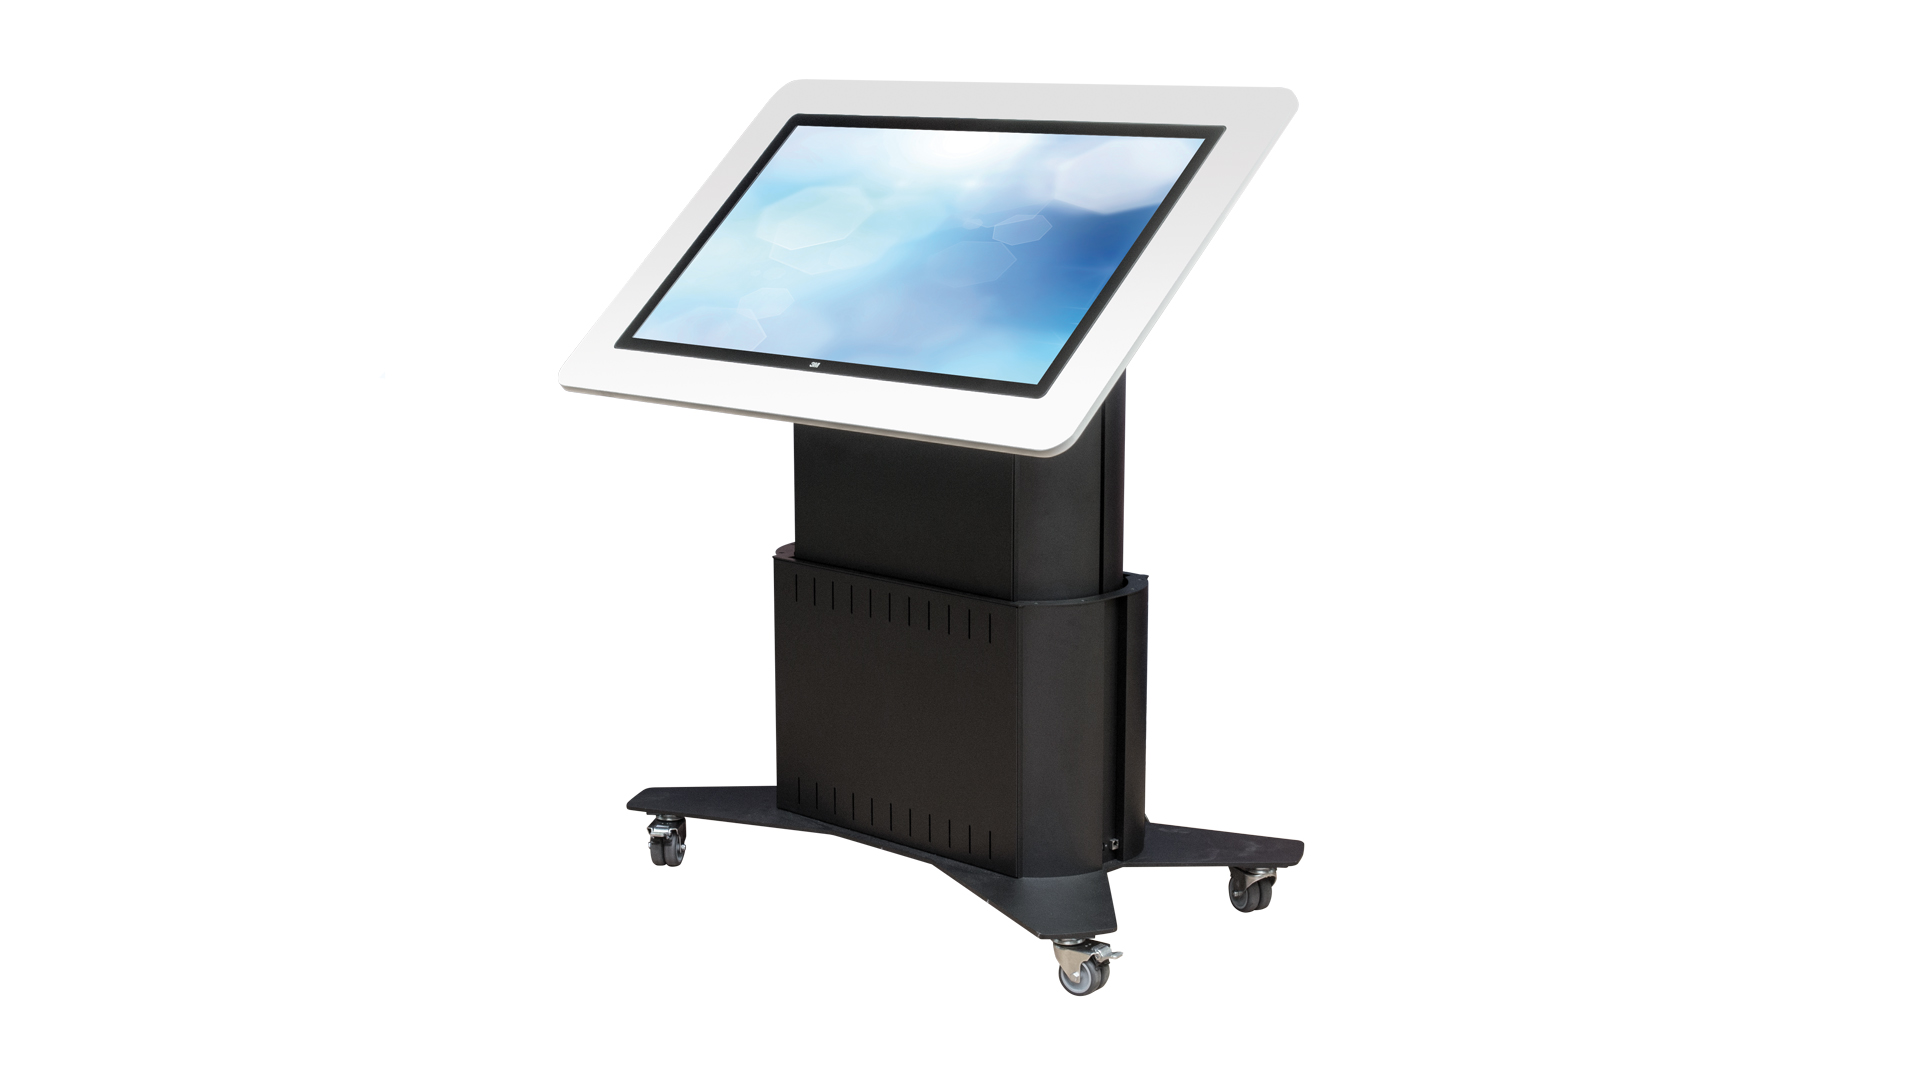 Touchtables-GiantLineSmart-PT-GT-946-Pcap-Smart-PT-GT-946-Pcap-Smart_315_hi_45_screen